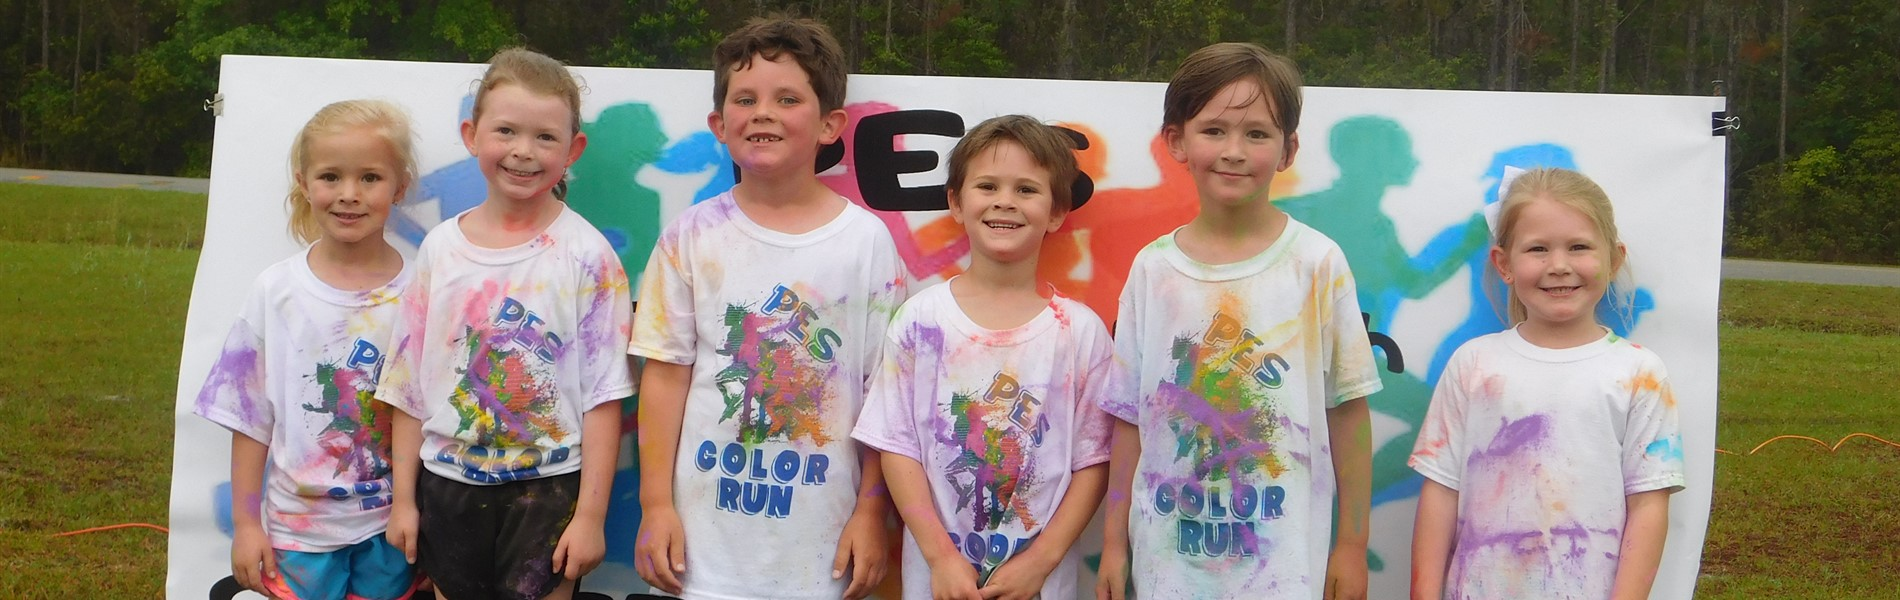 PES Color Run